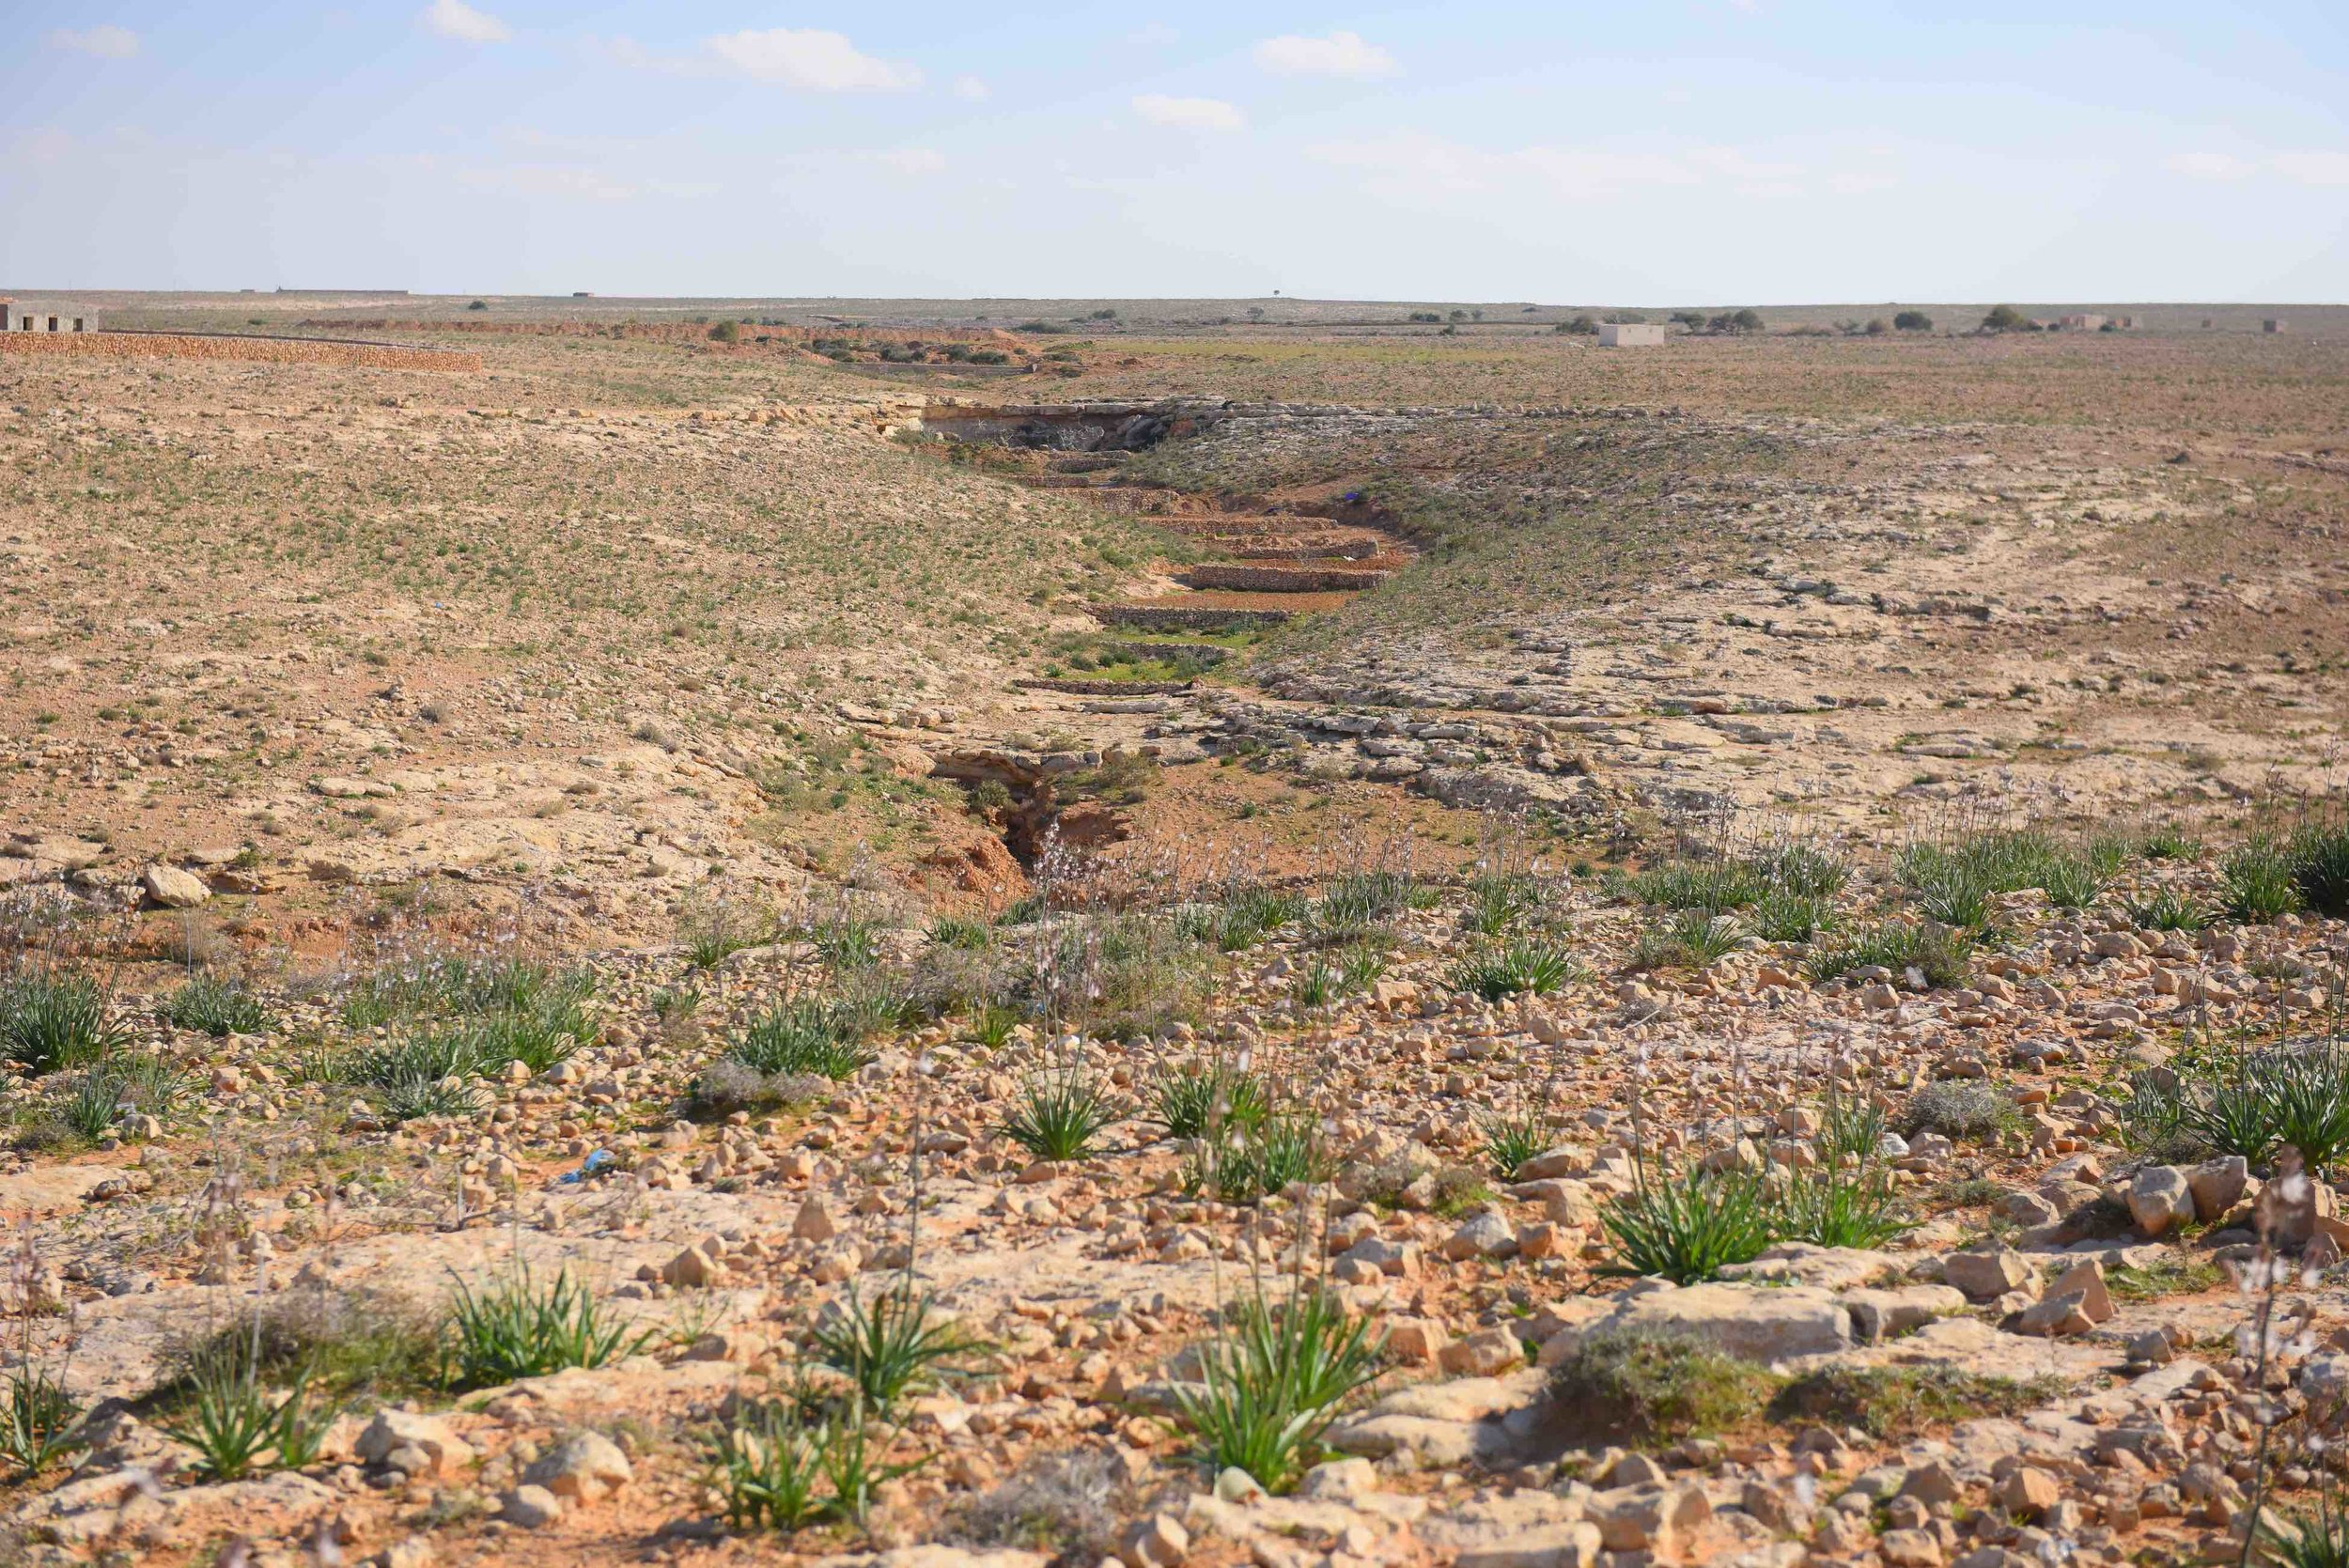 Landscape which shows multiple wadi catchment structures for slowing down surface water